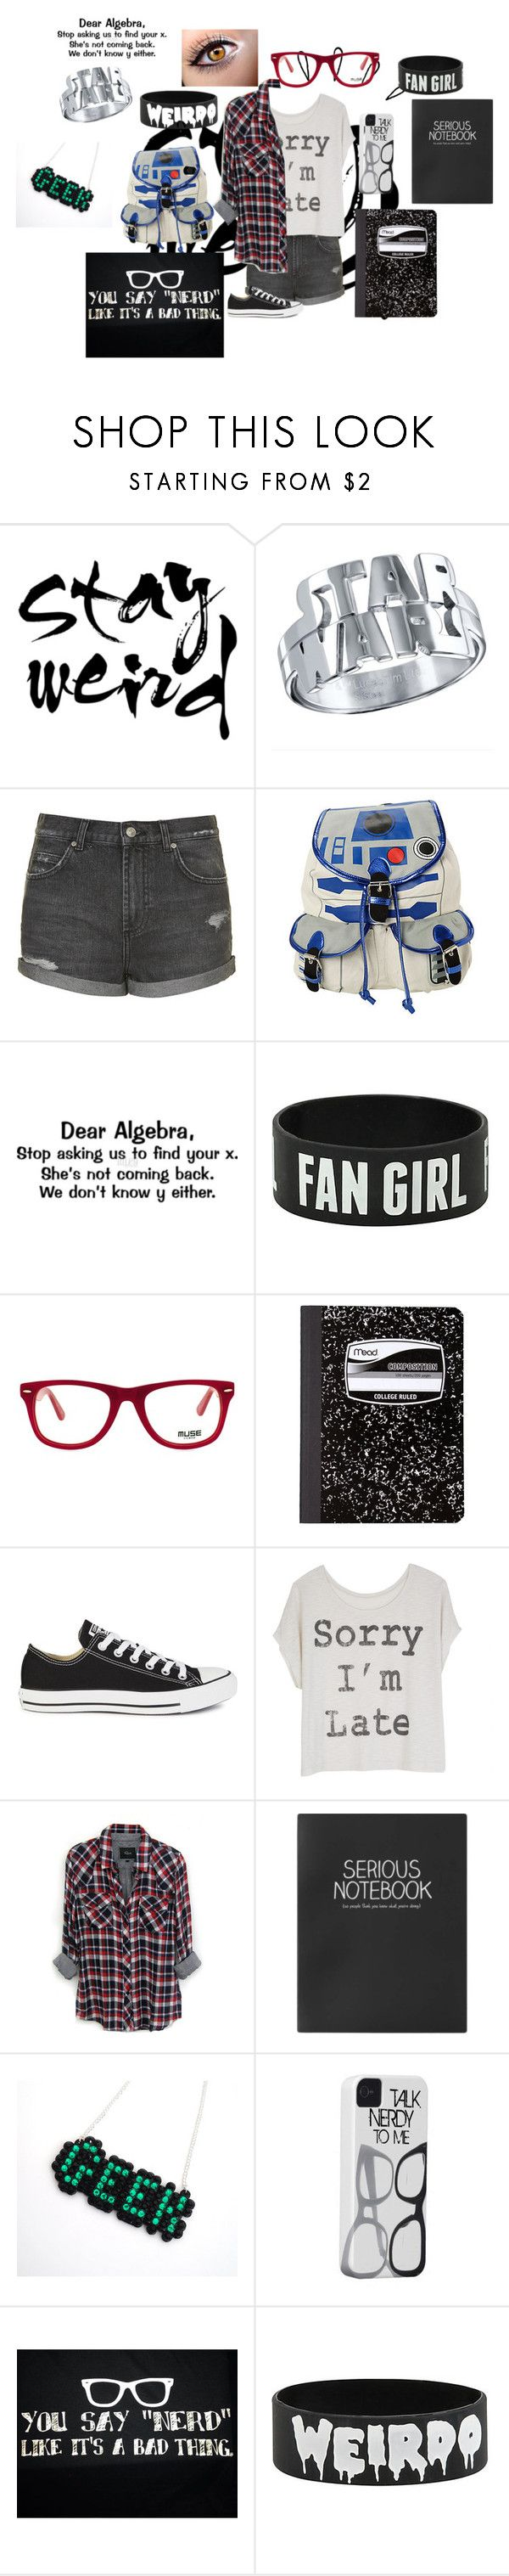 """Untitled #62"" by im-a-unicorn-duh ❤ liked on Polyvore featuring Topshop, Old Navy, R2, Muse, Mead, Converse and Rails"